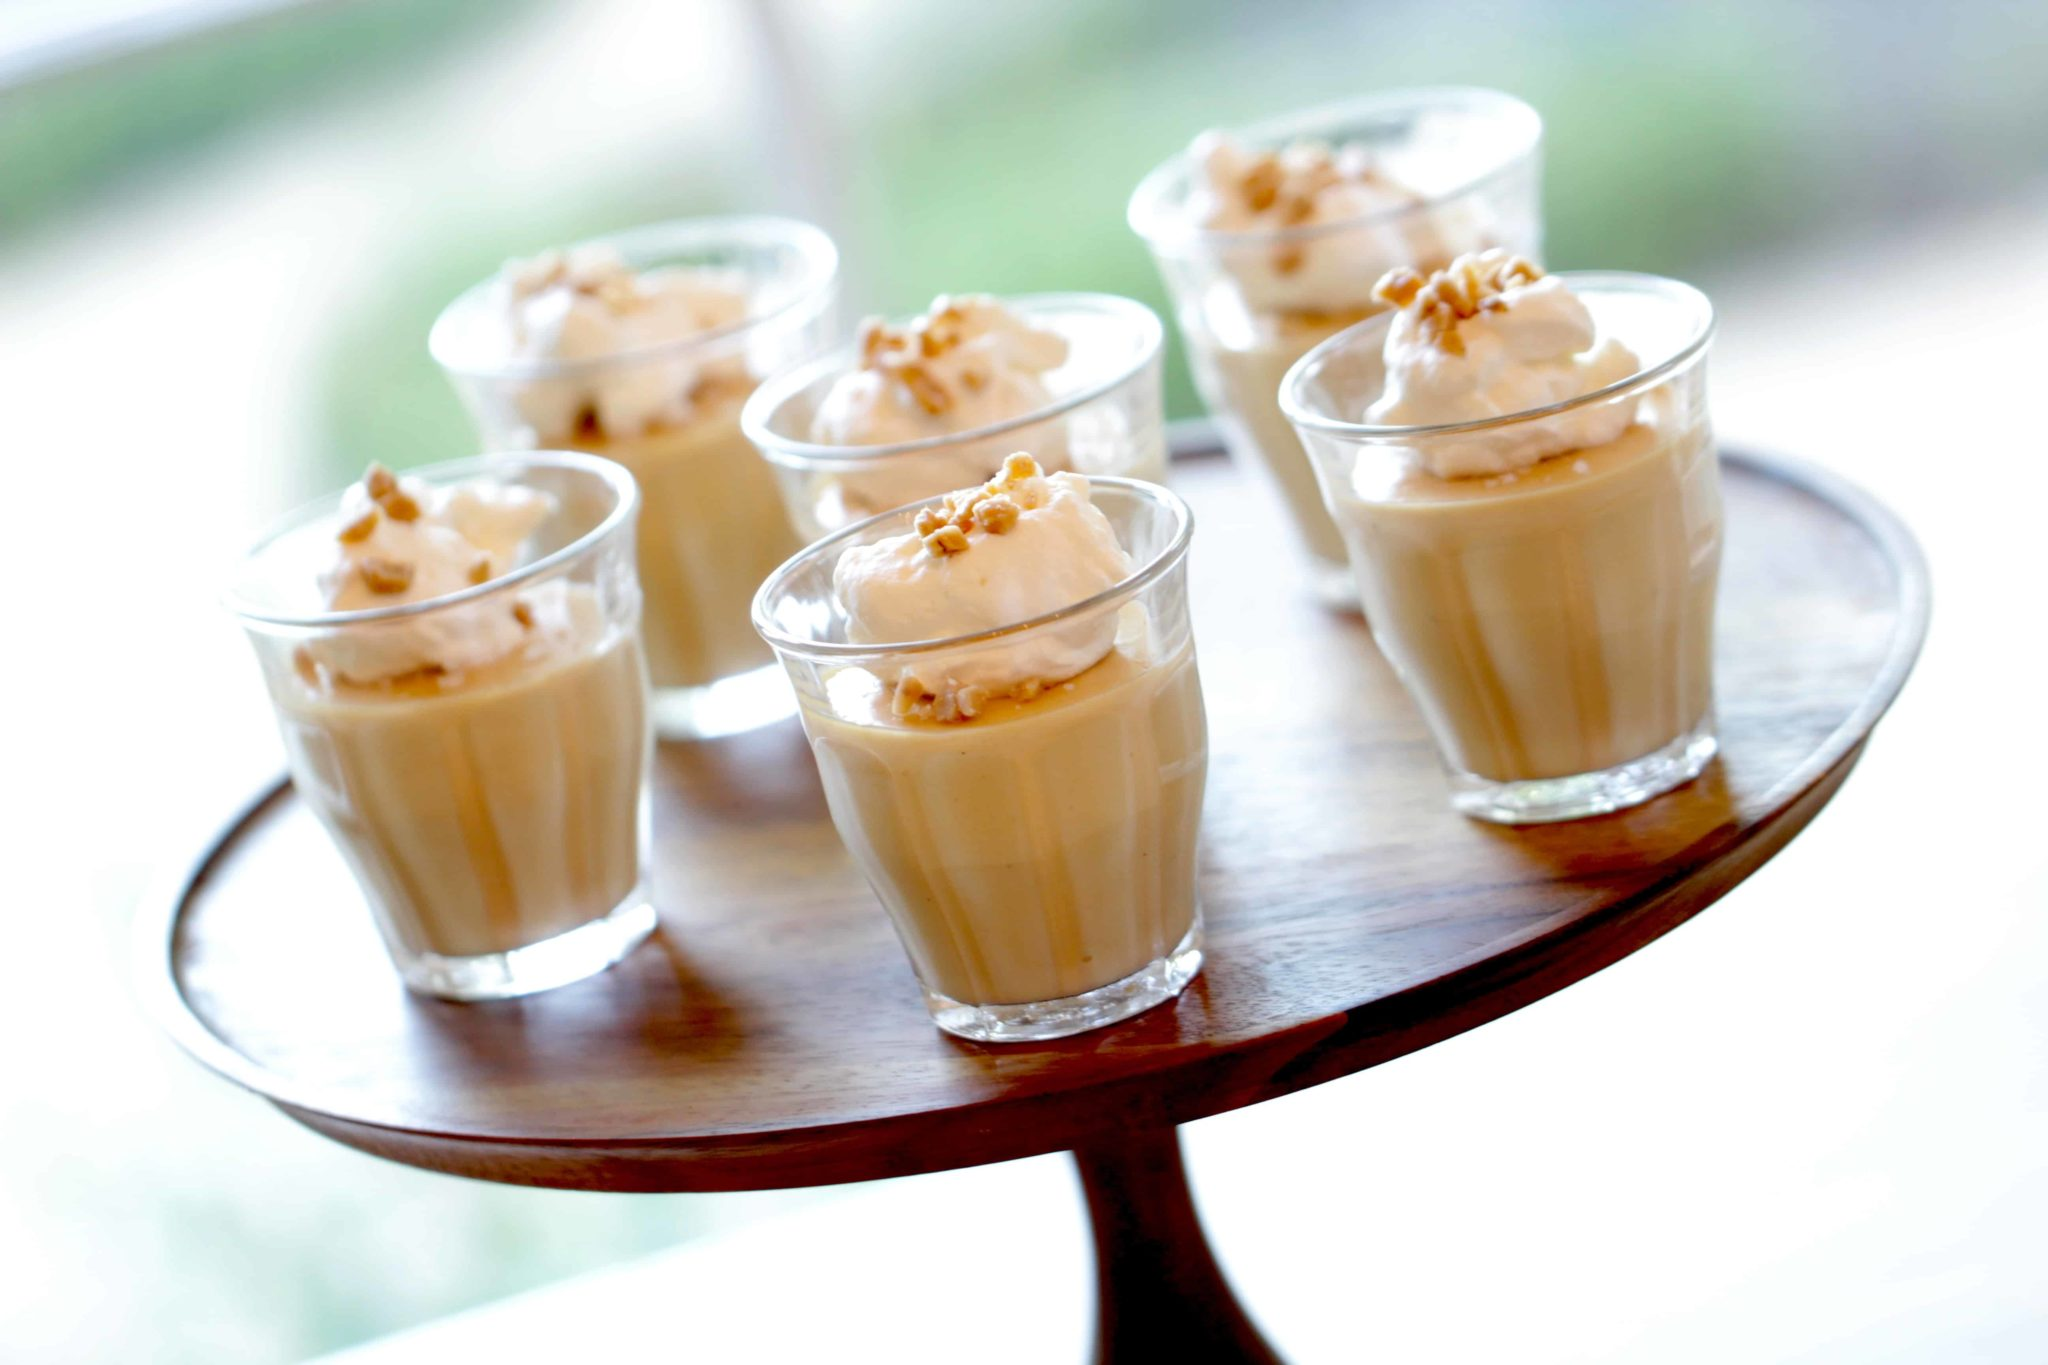 Salted Caramel Puddings